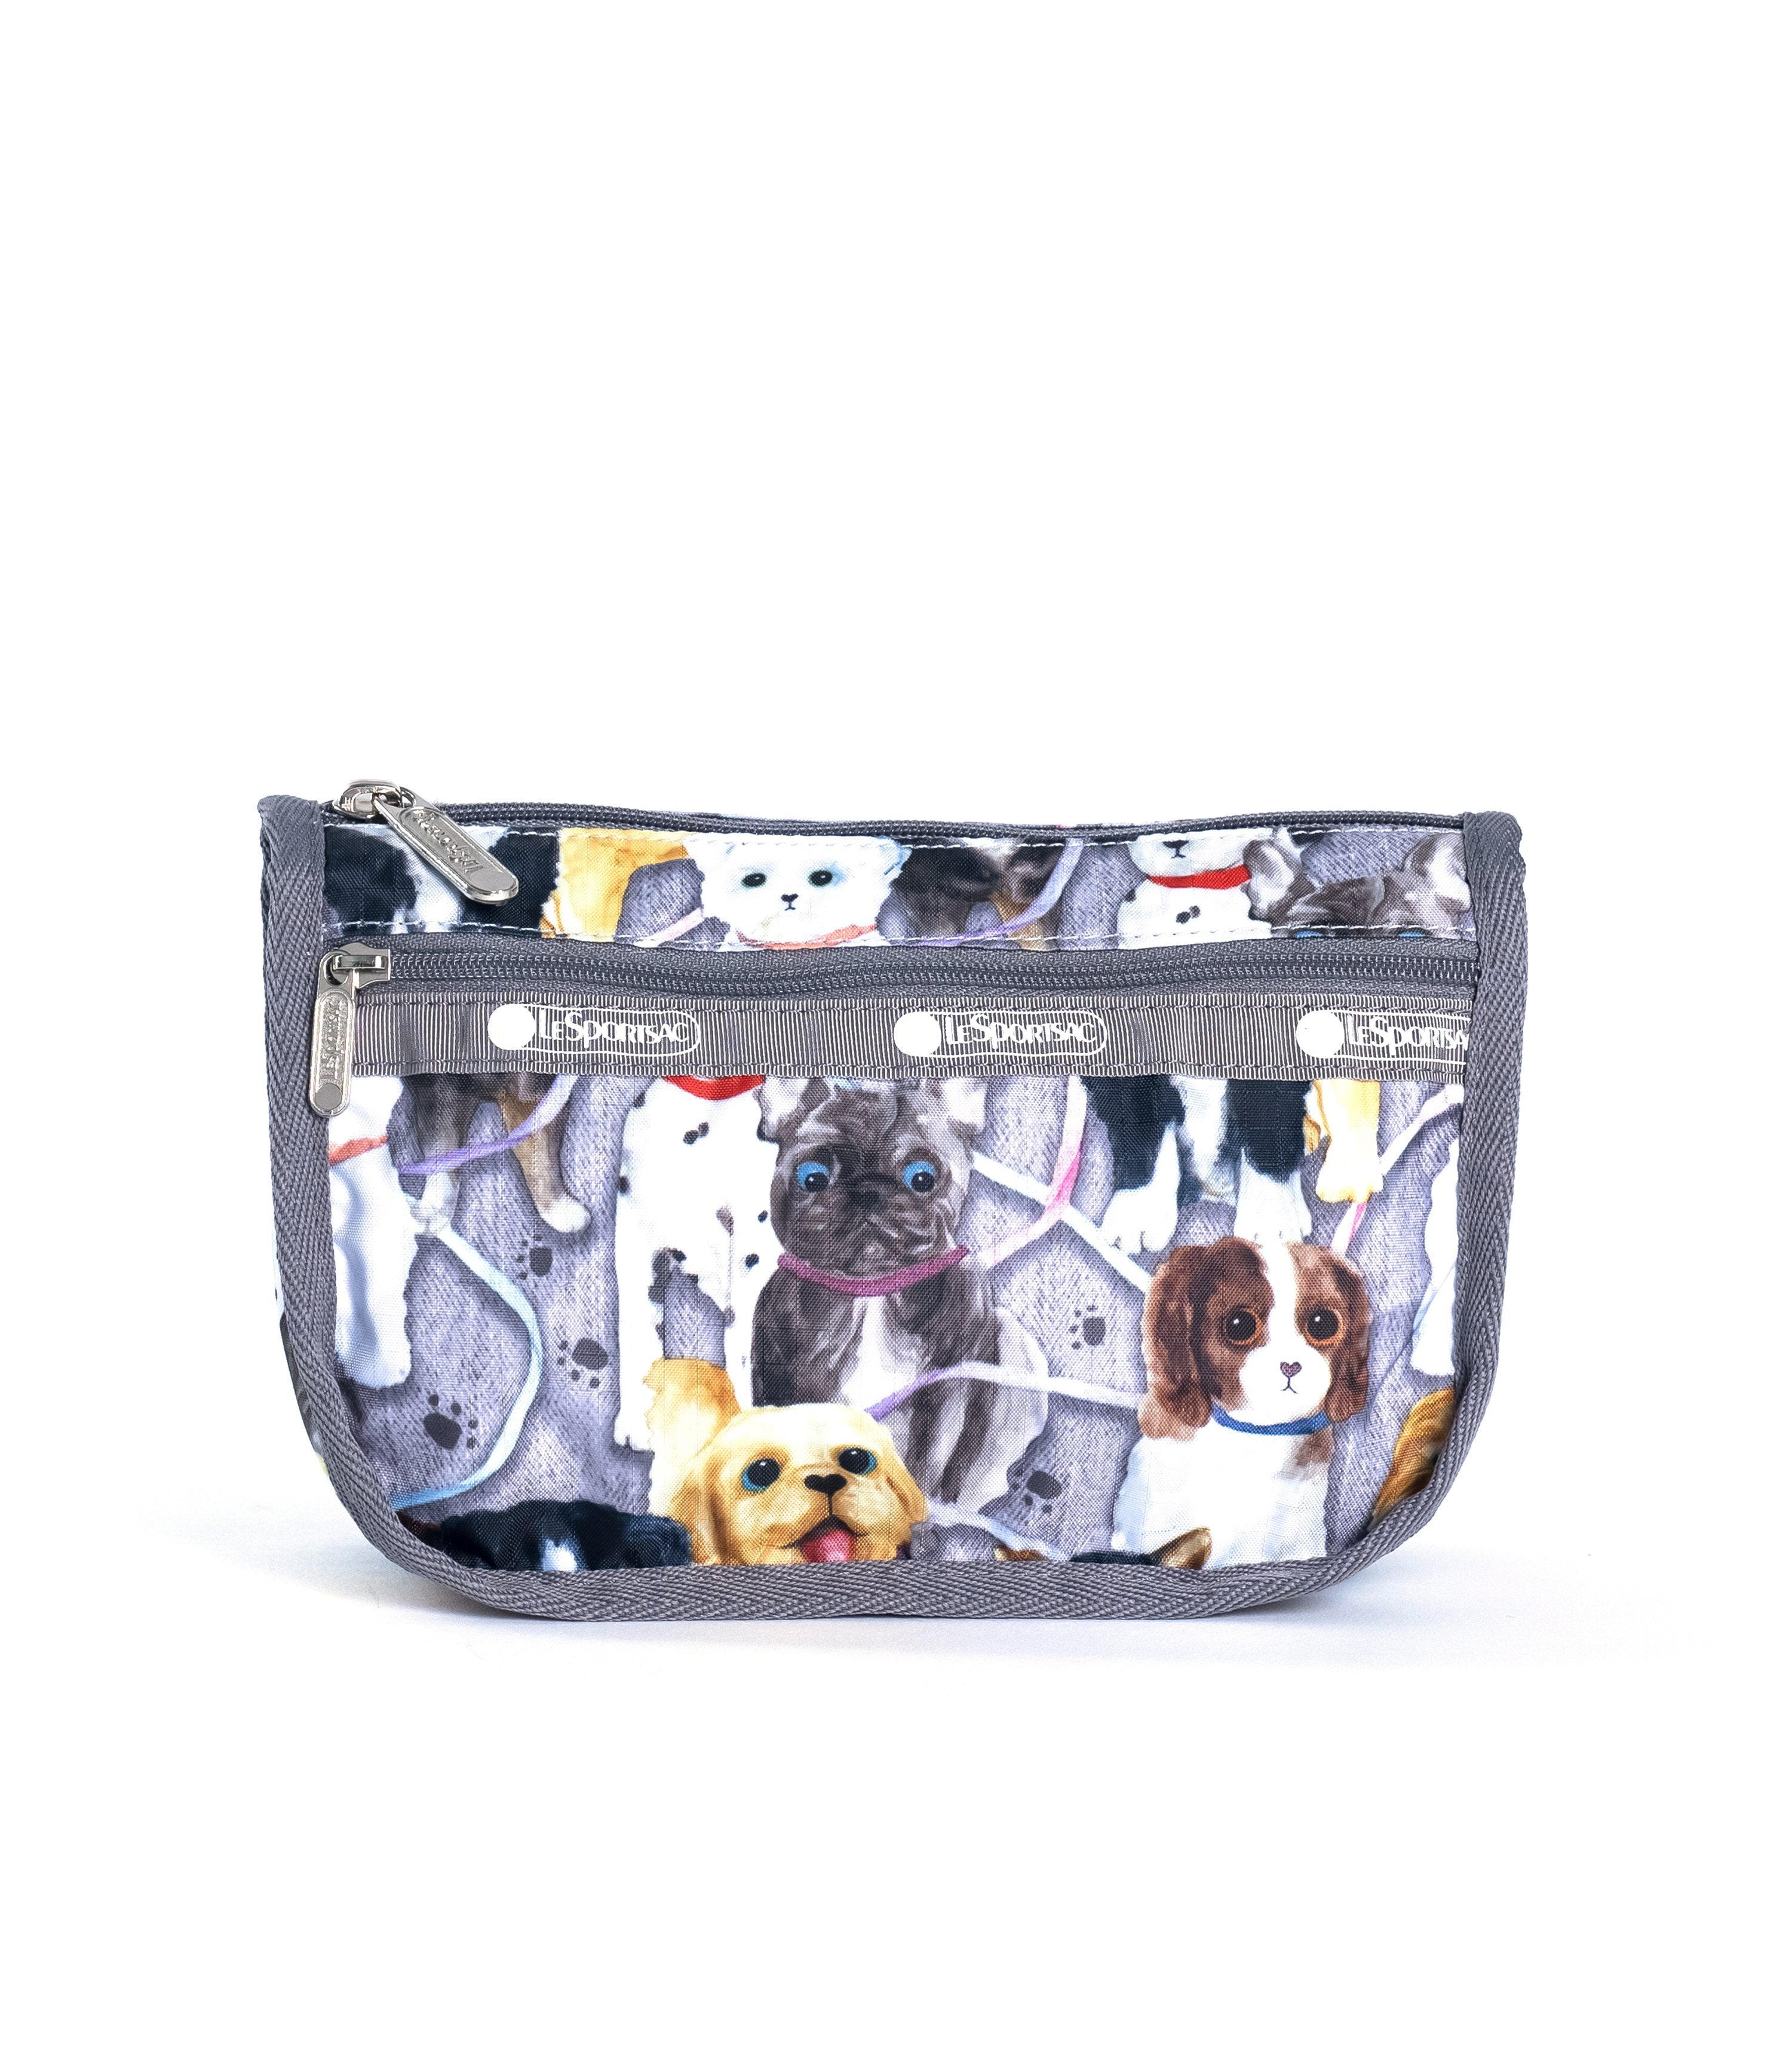 LeSportsac - Travel Cosmetic - Accessories - Puppy Park print